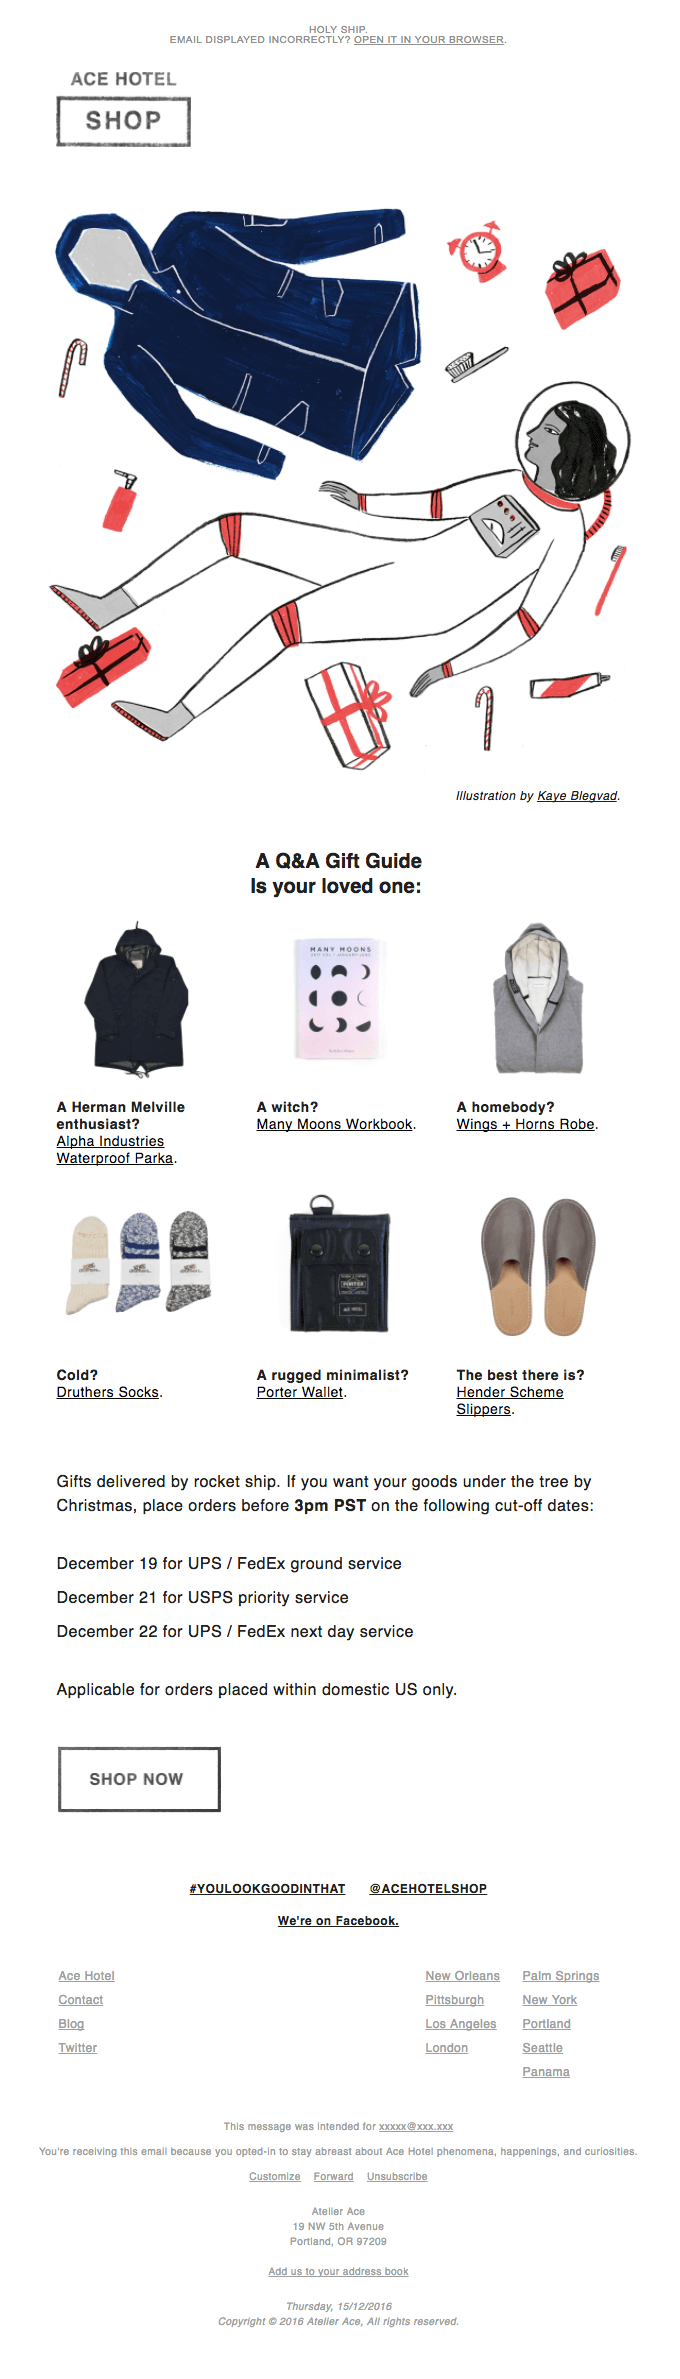 ace hotel email